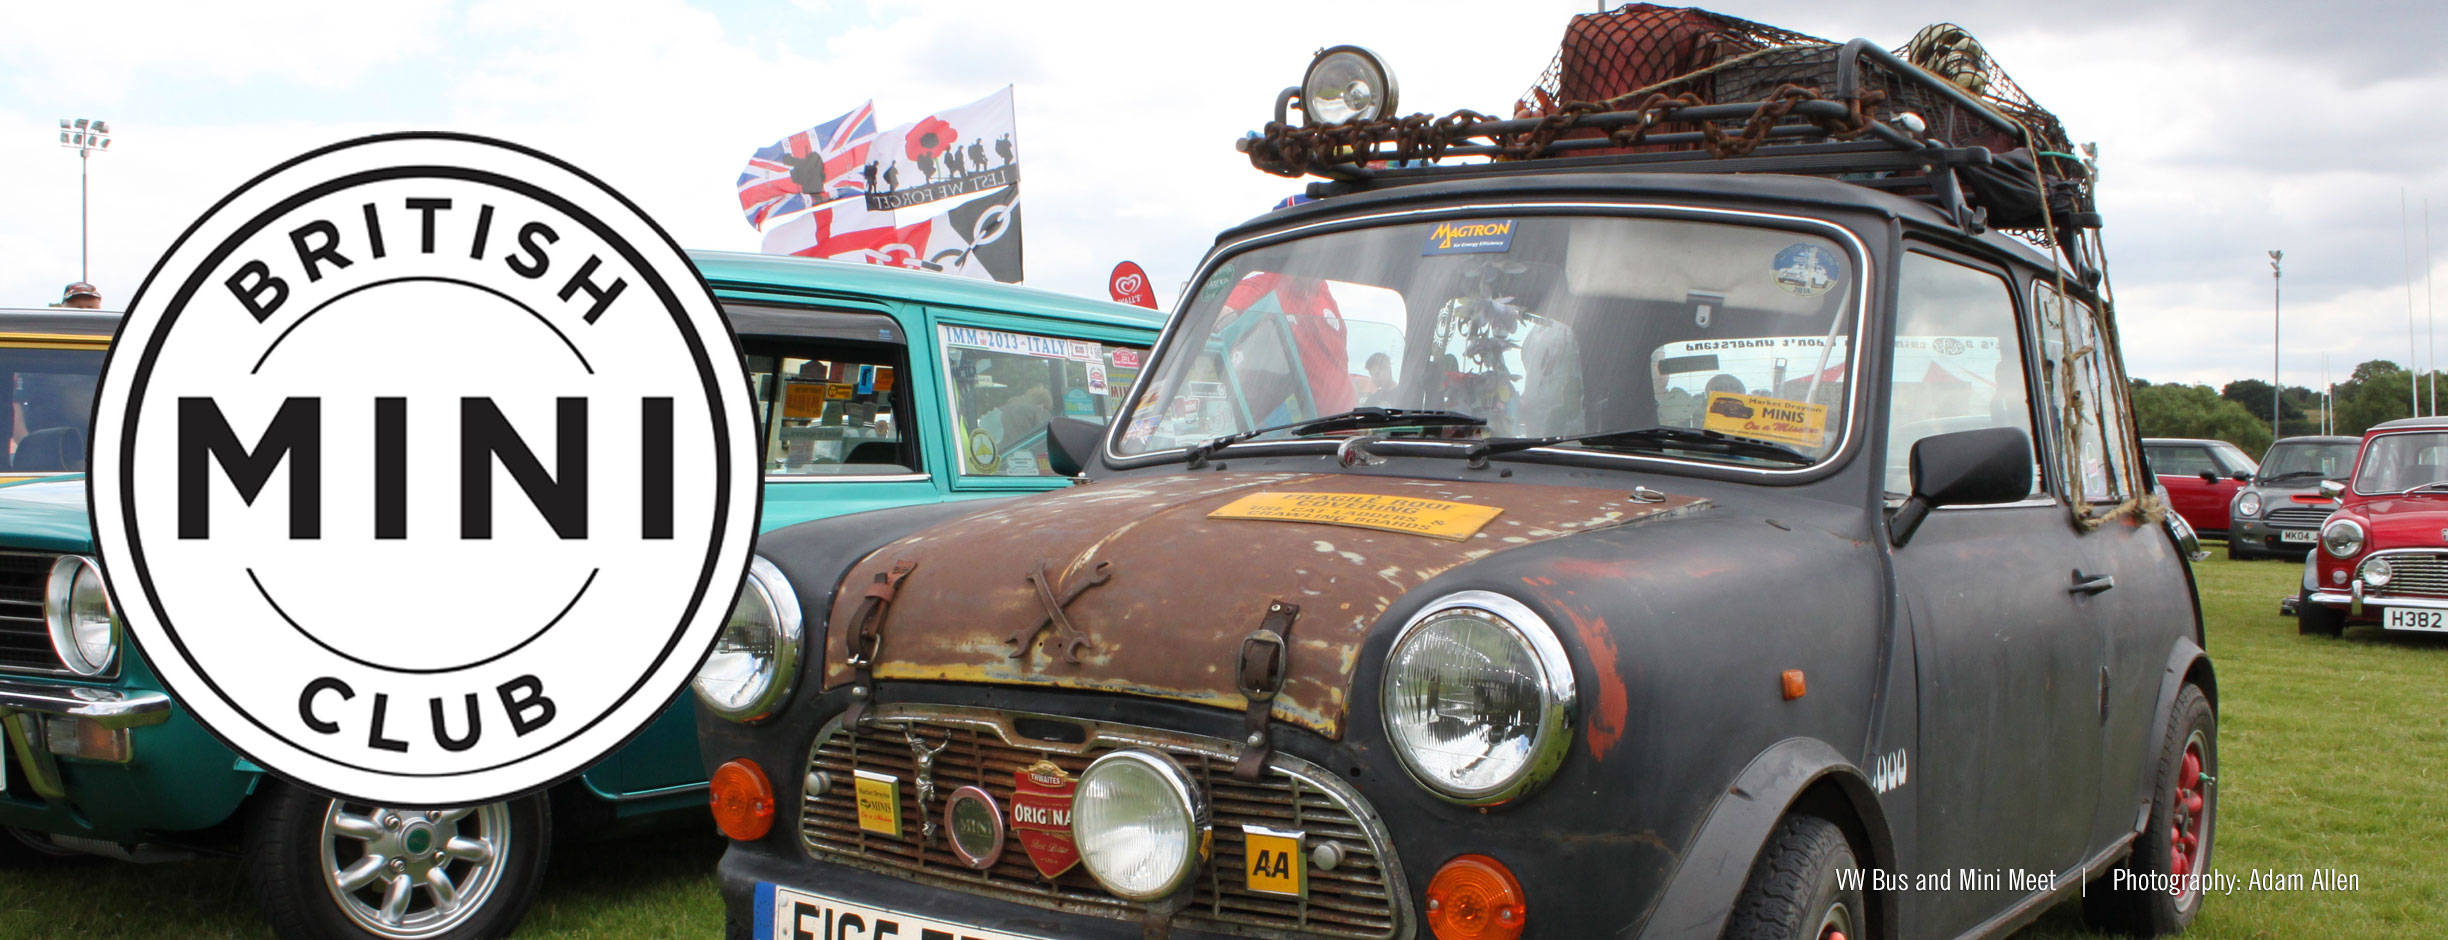 British Mini Club